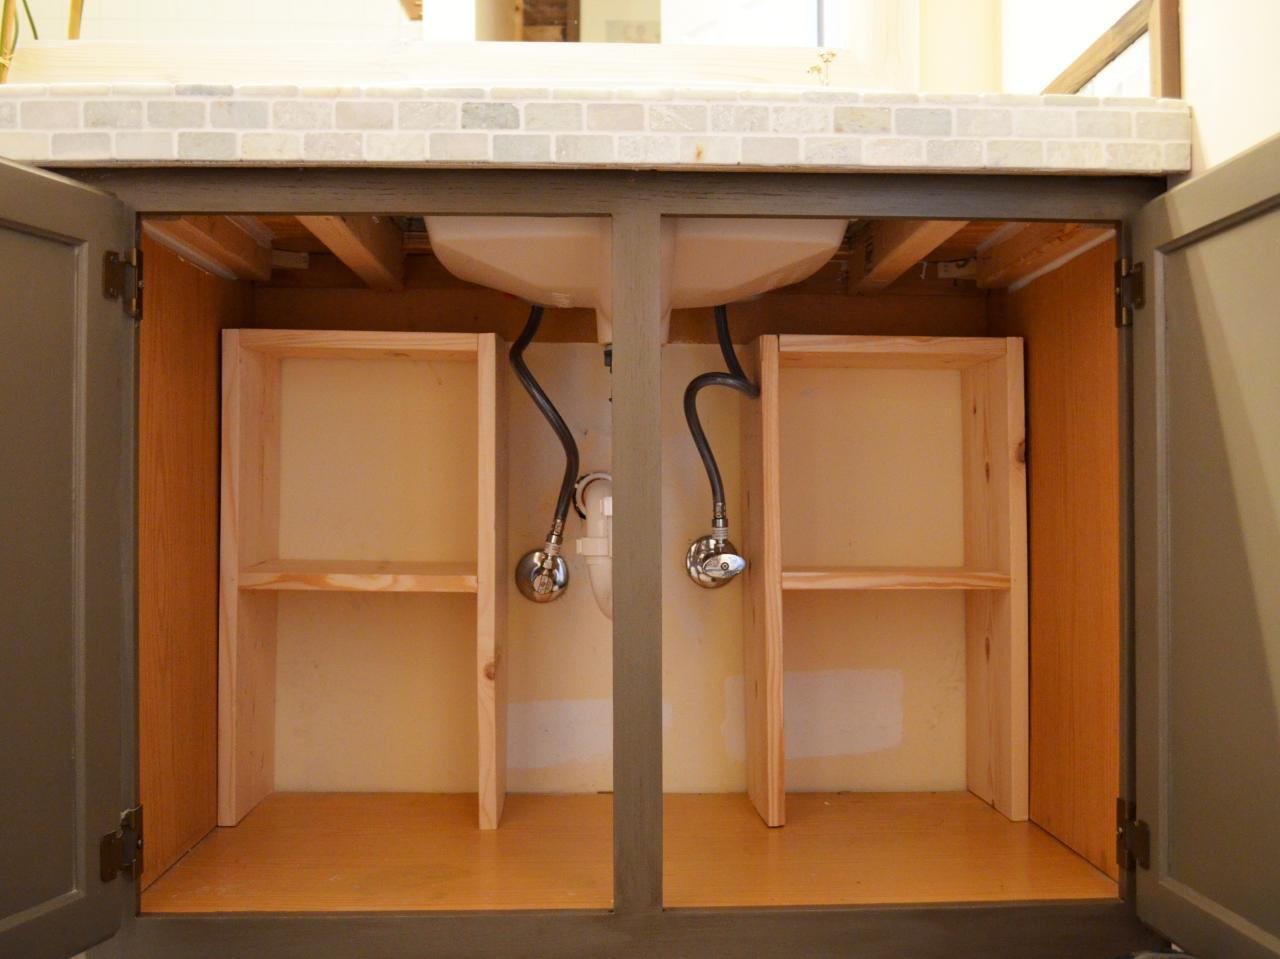 A Step By Step Guide For Creating Storage Under The Sink